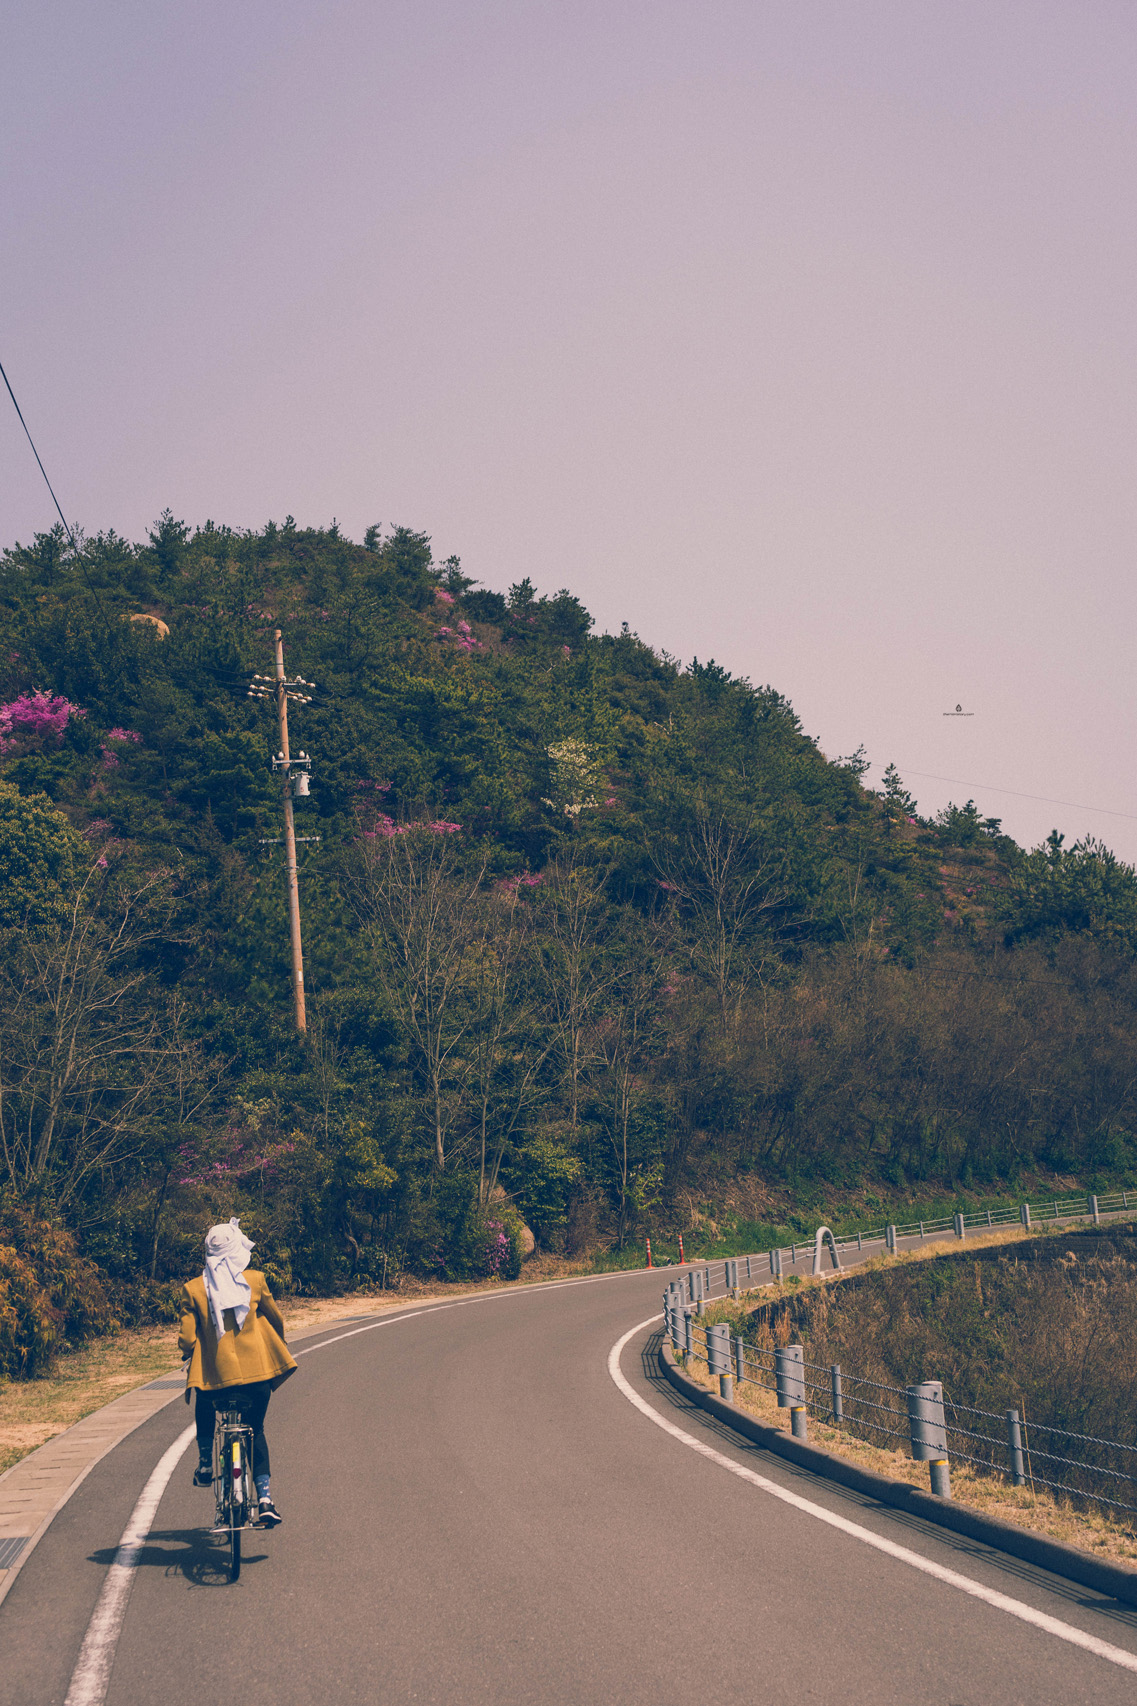 On the road in Naoshima